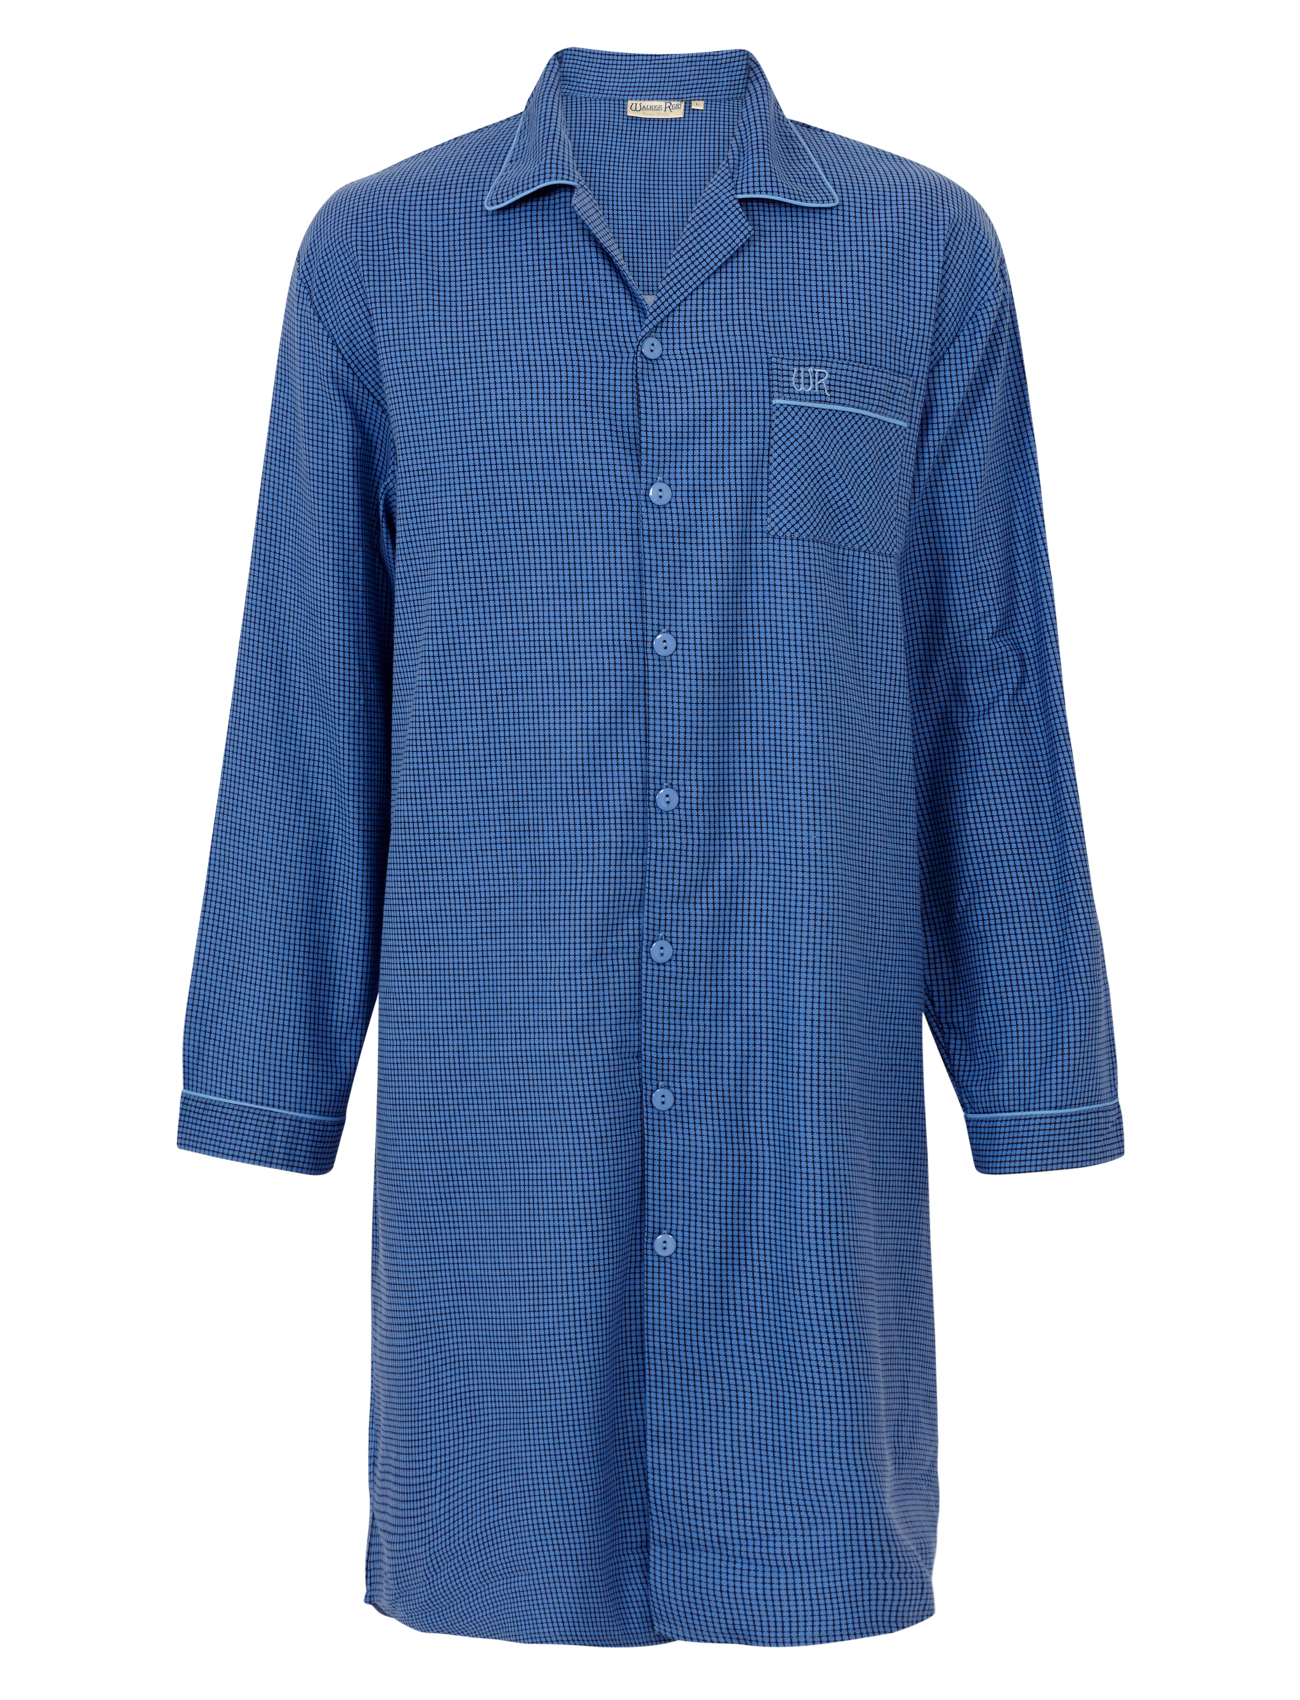 Checked mens night shirt 100 cotton walker reid button up for Long sleep shirts cotton